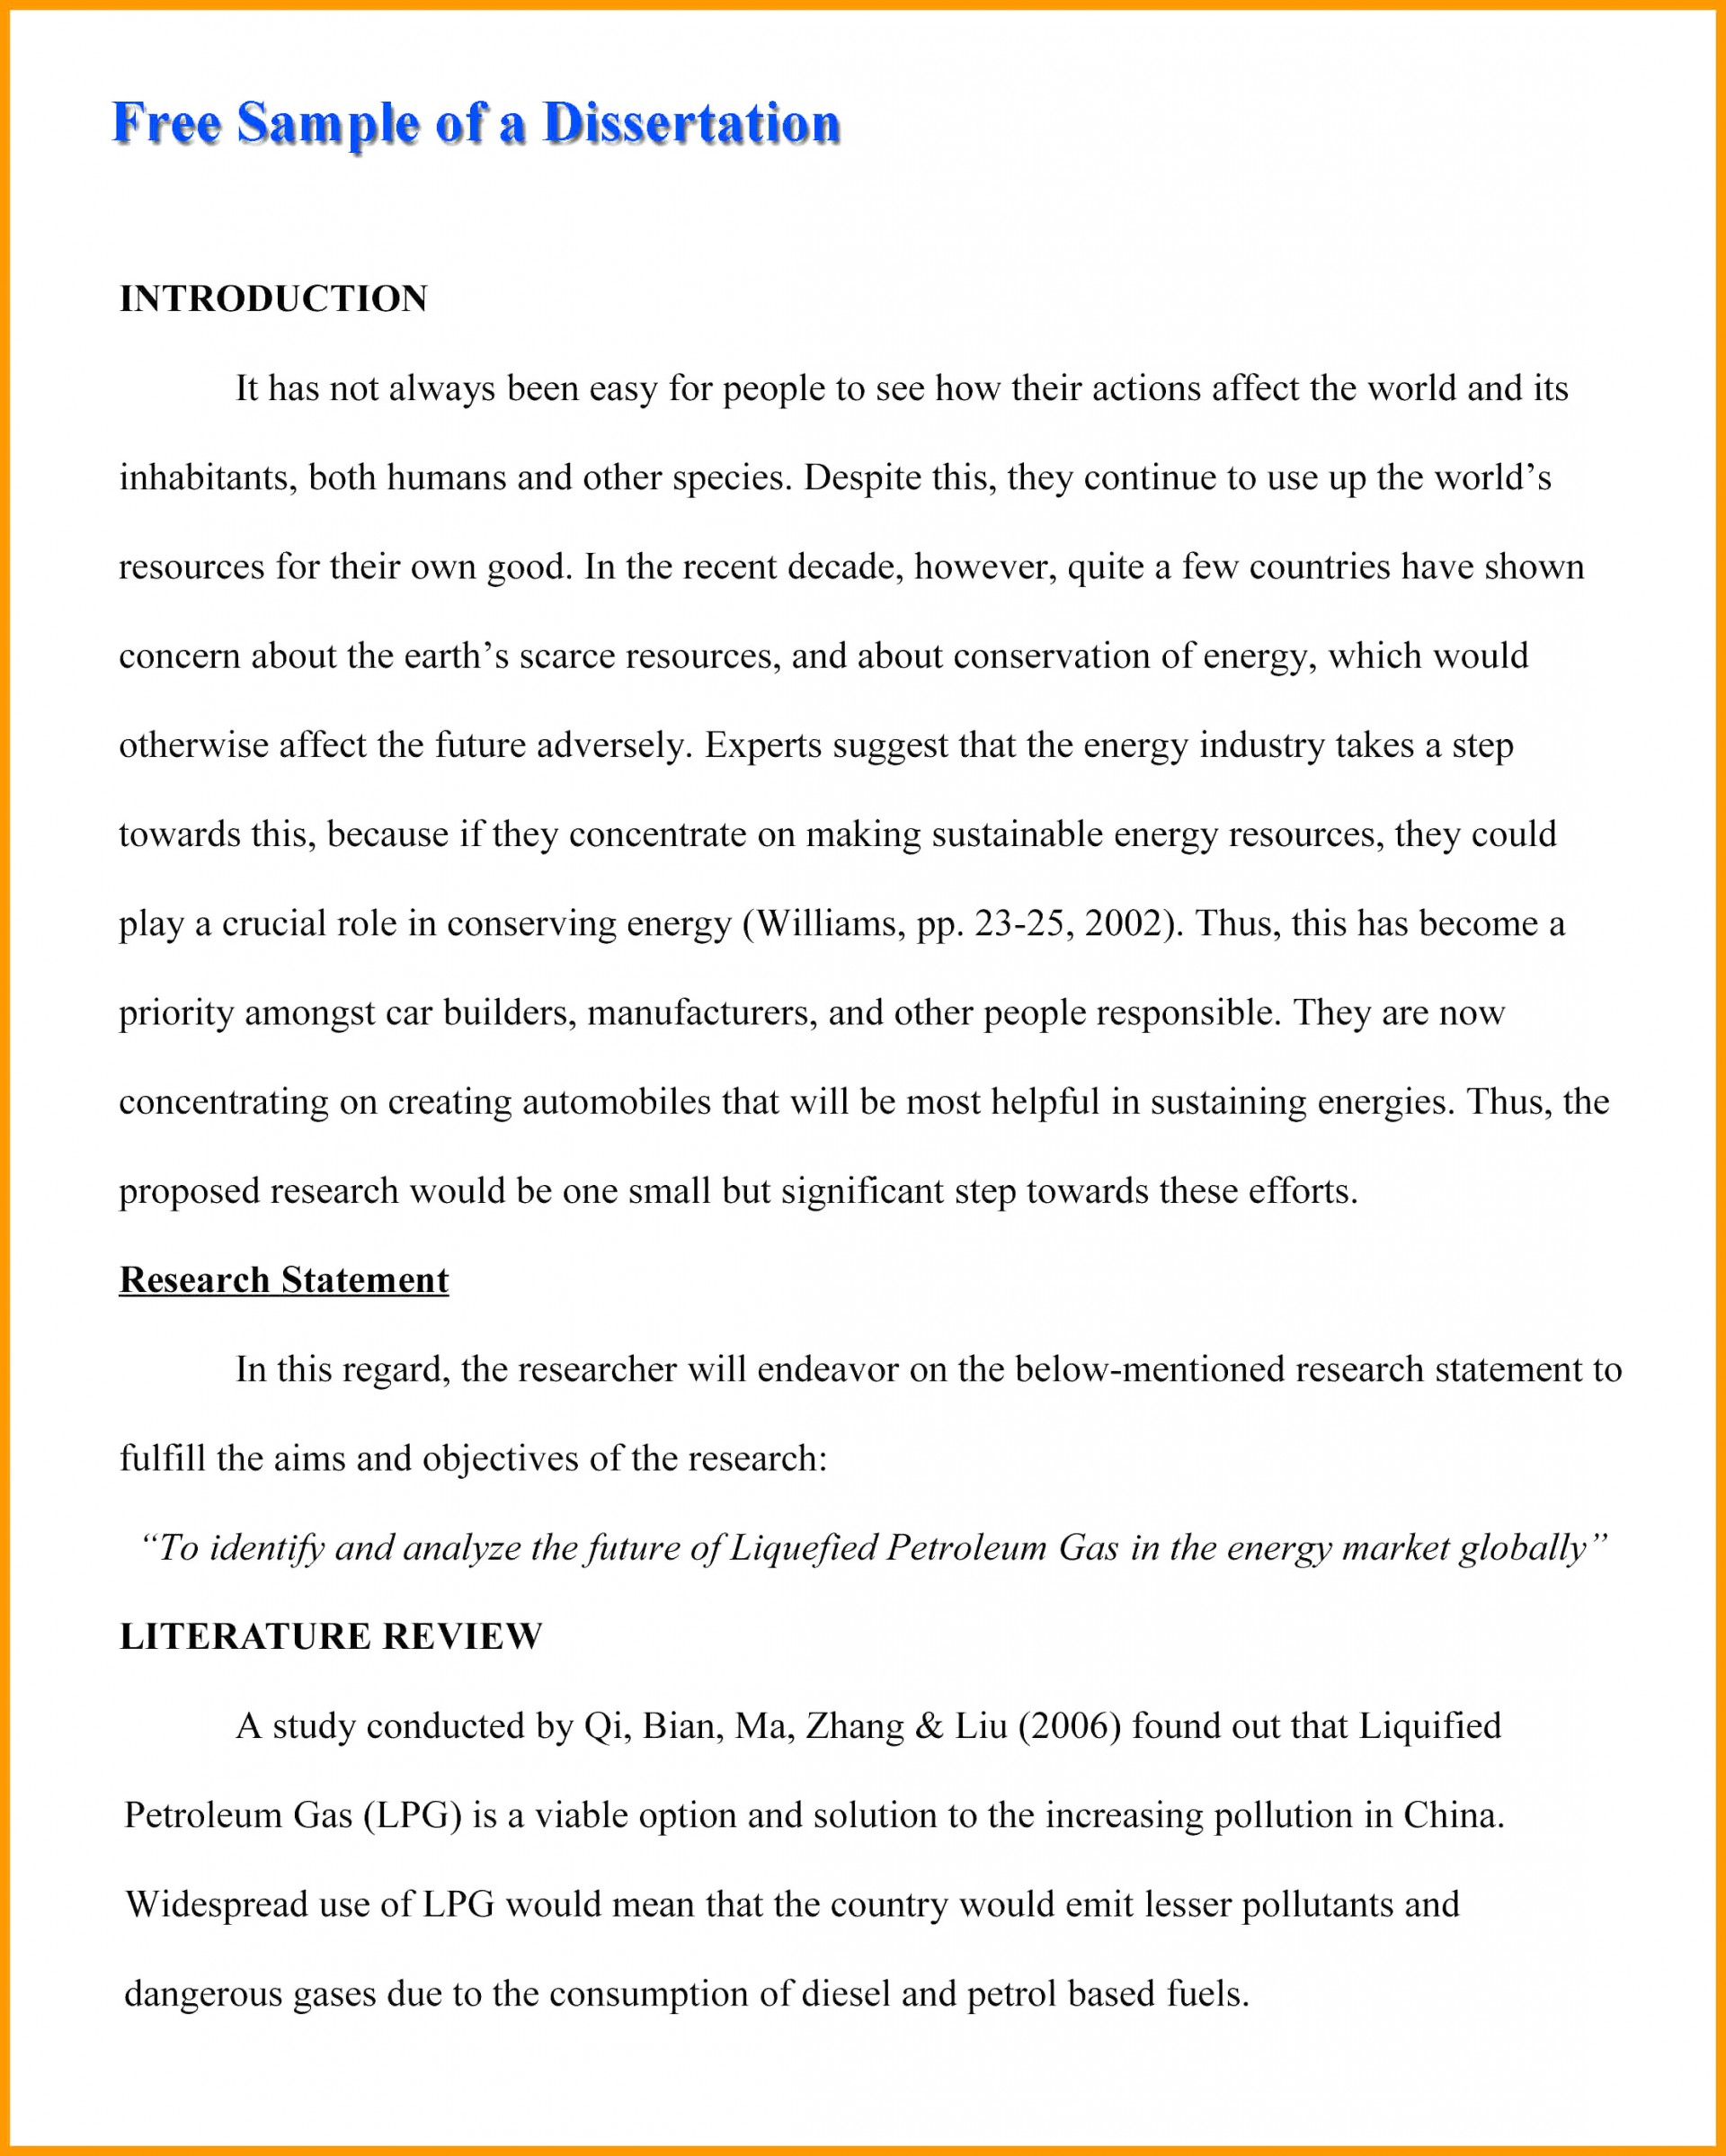 008 Outline Research Paper War On Drugs Formidable Examples For Middle School Writing A Template Mla 1920